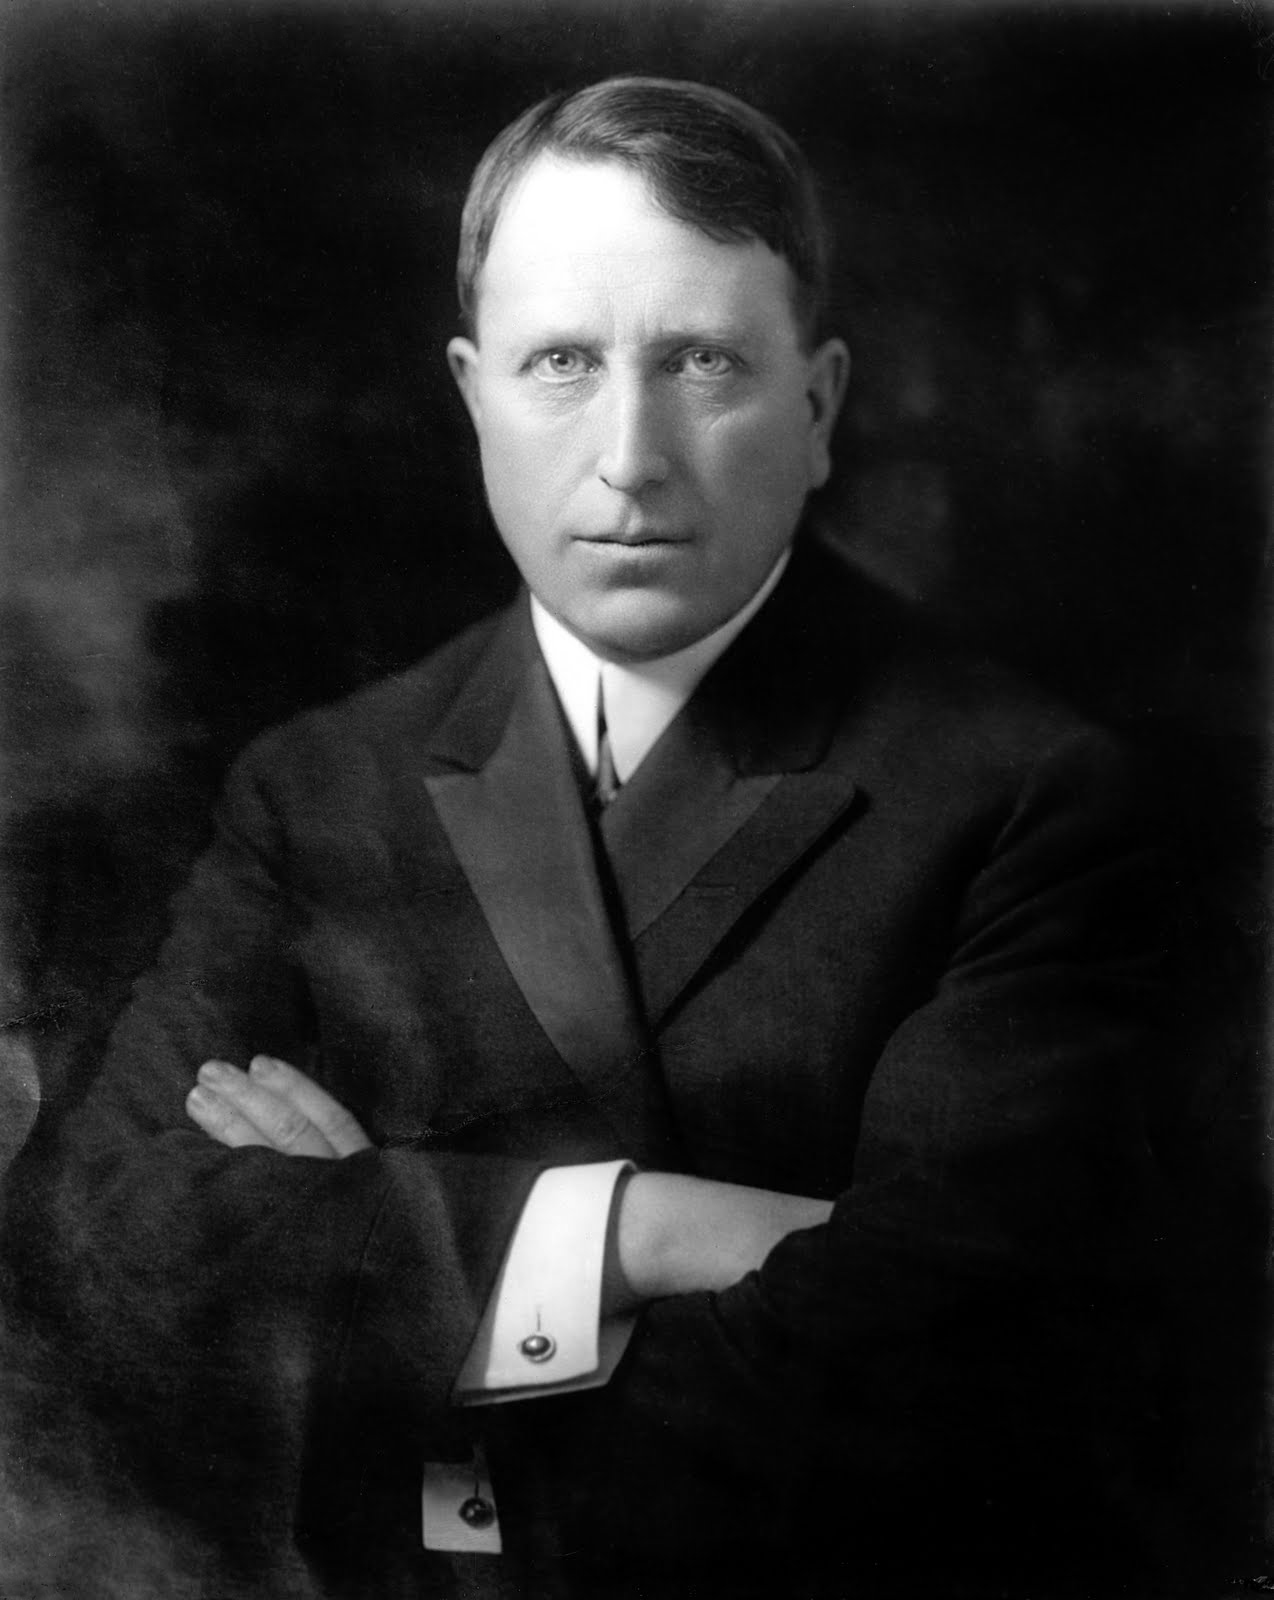 Ritratto di William Randolph Hearst